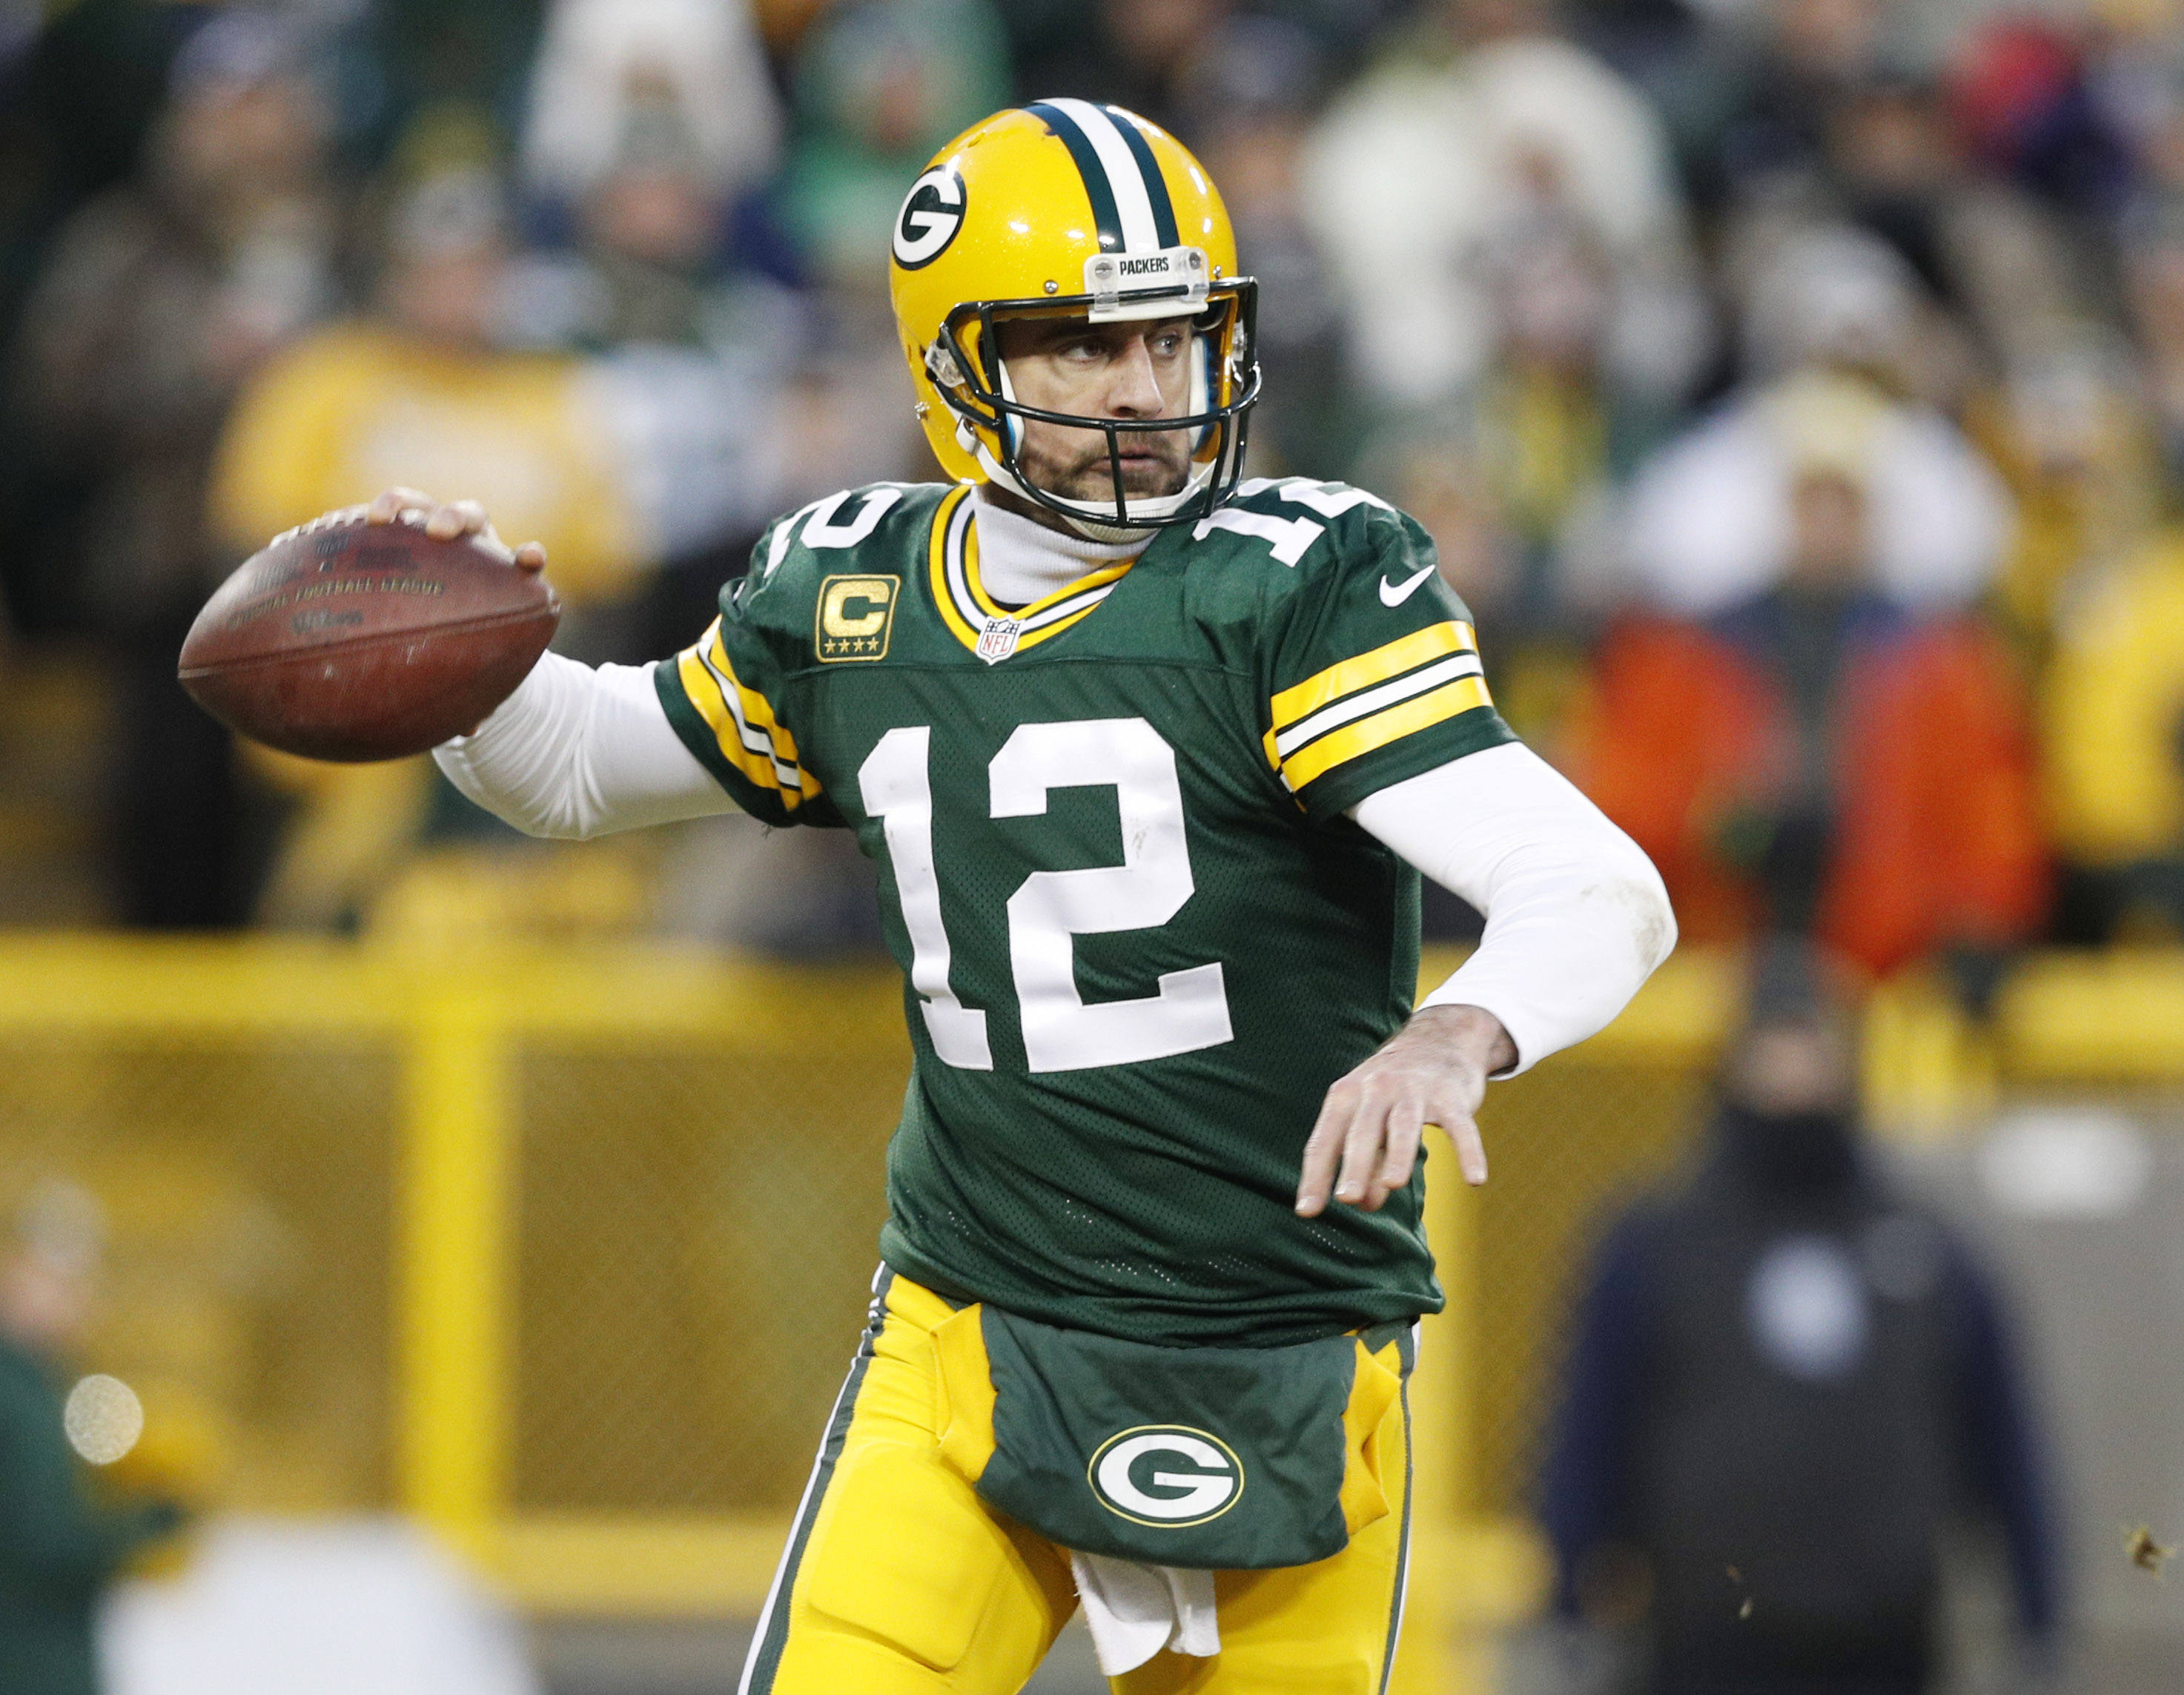 9797987-nfl-nfc-wild-card-new-york-giants-at-green-bay-packers